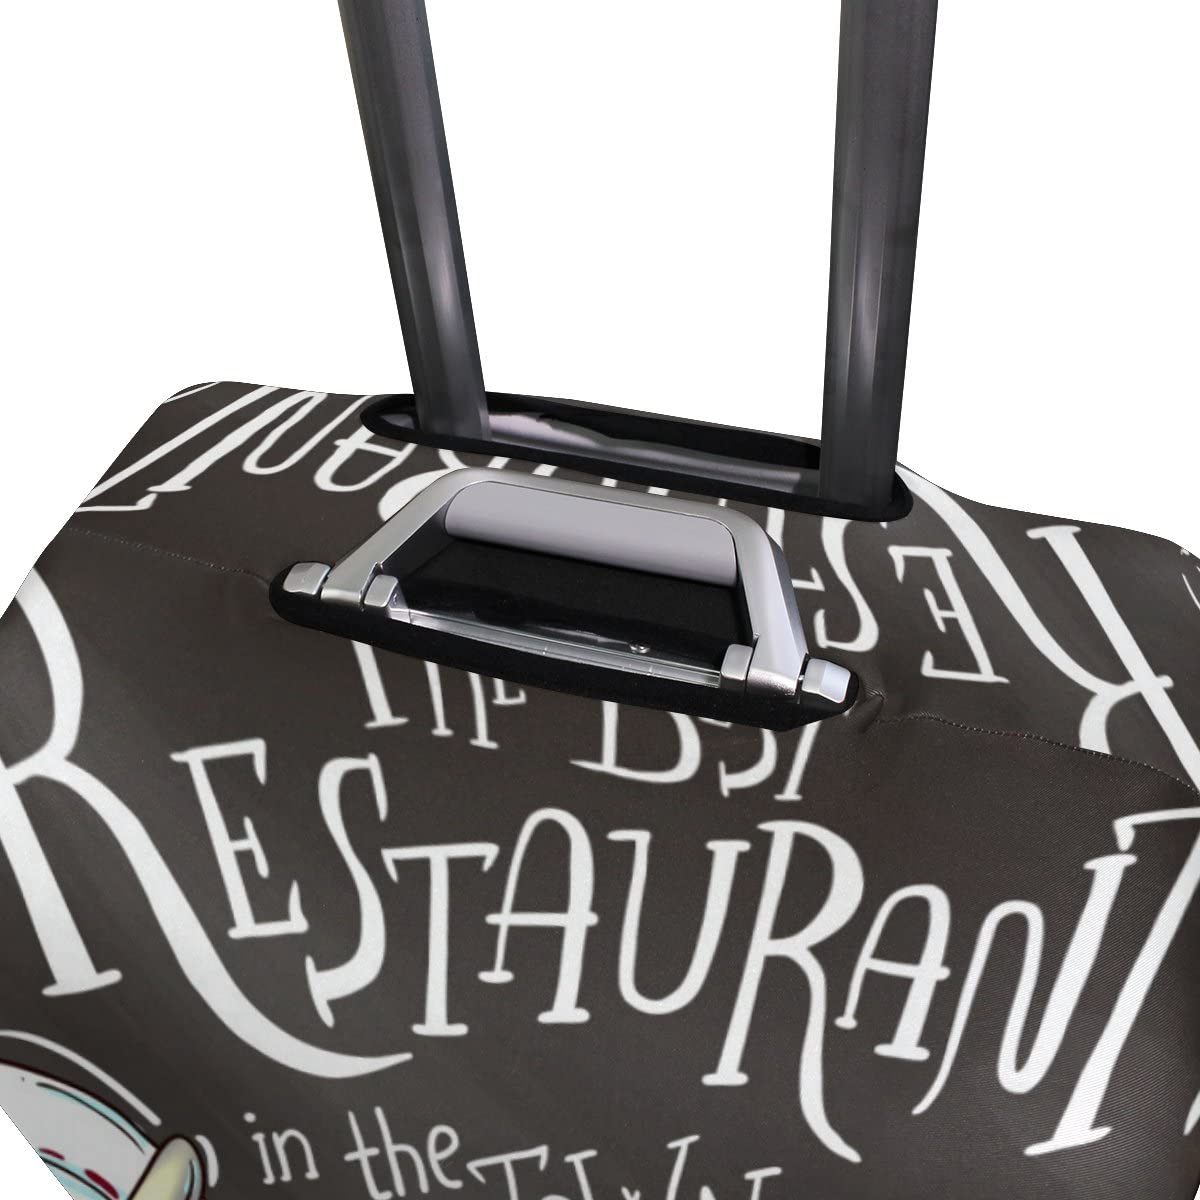 Elastic Travel Luggage Cover The Best Restaurant Suitcase Protector for 18-20 Inch Luggage